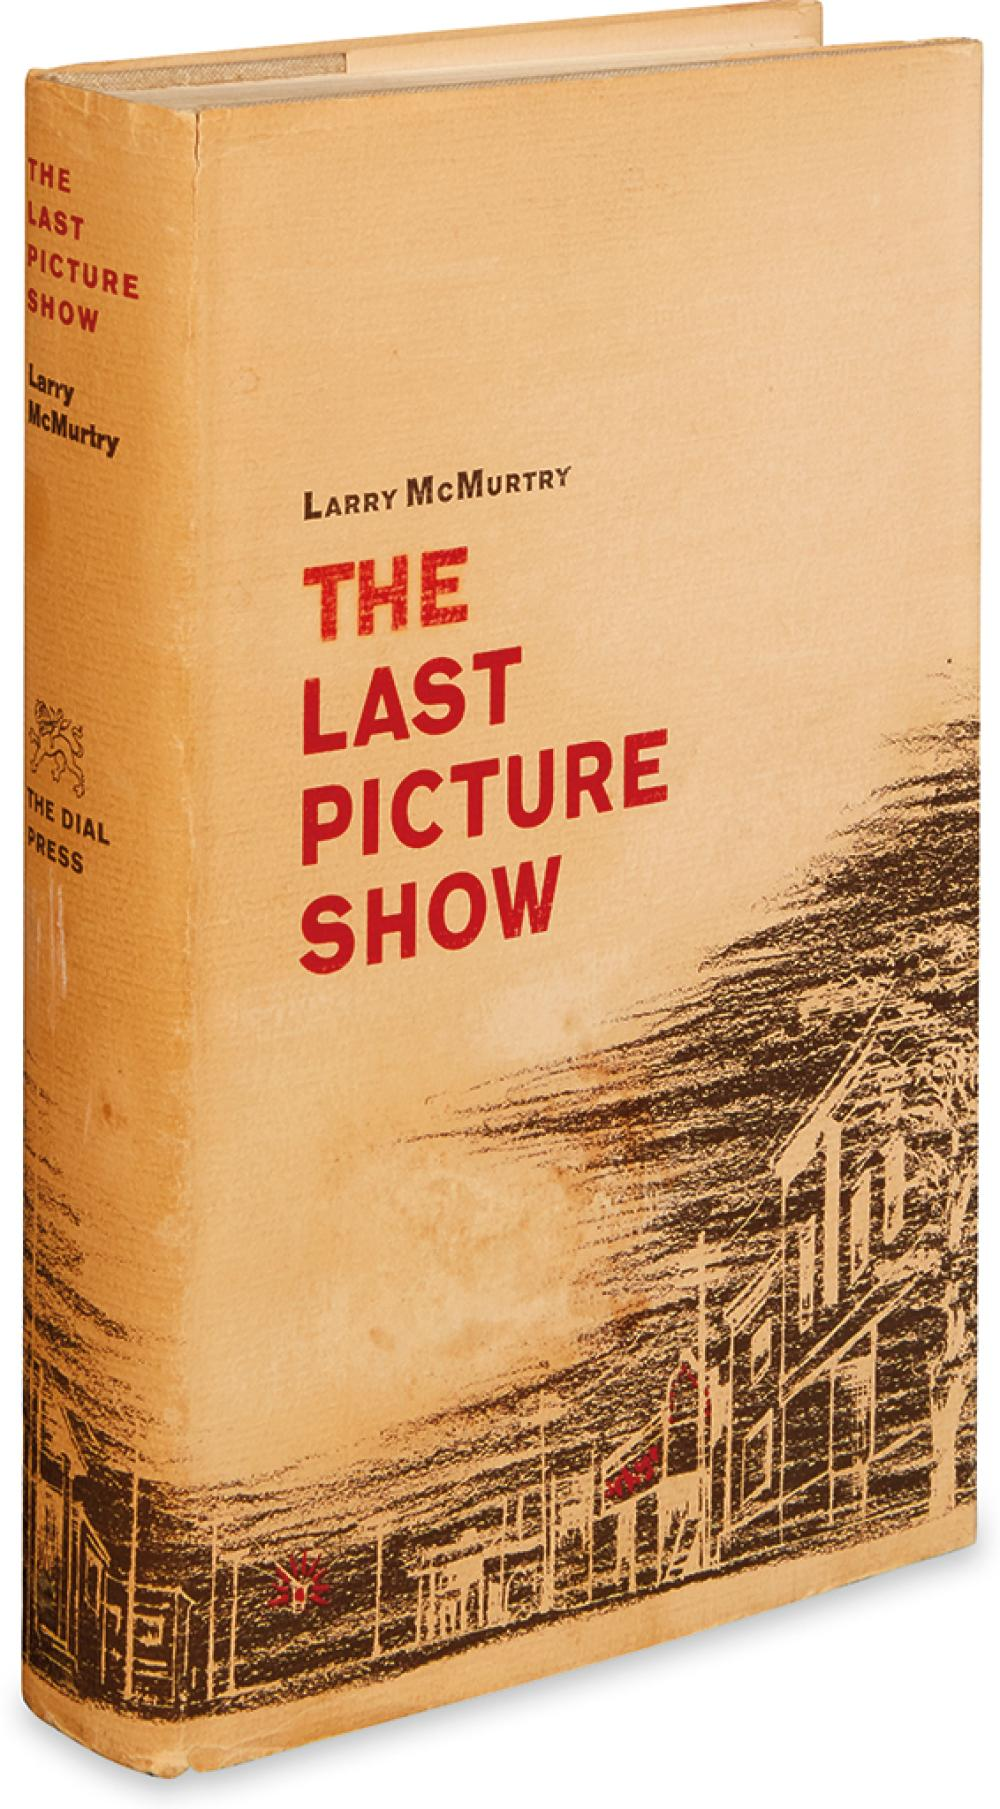 MCMURTRY, LARRY. The Last Picture Show.